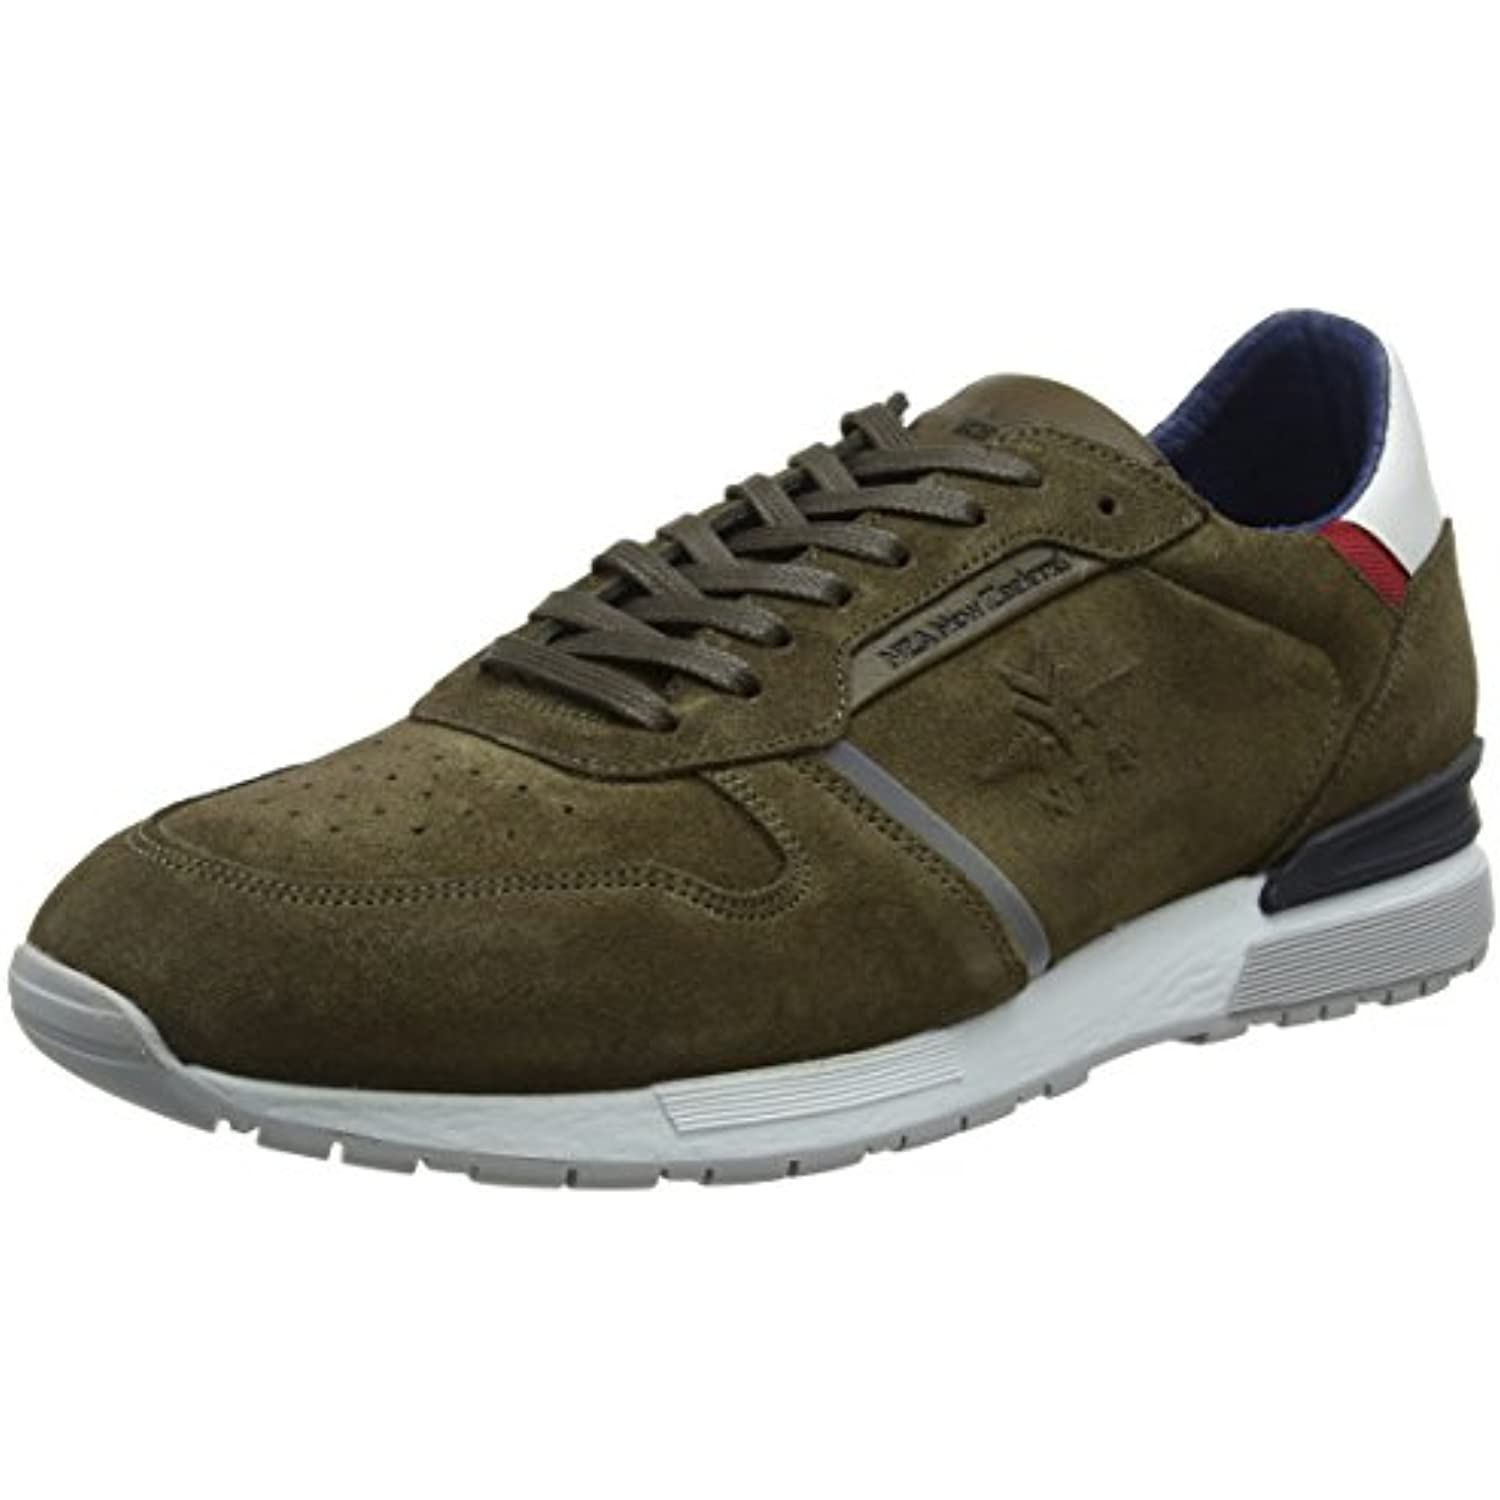 NZA Kurow Sue M, Baskets Homme Homme Homme - B076H5LCW4 - 01aceb